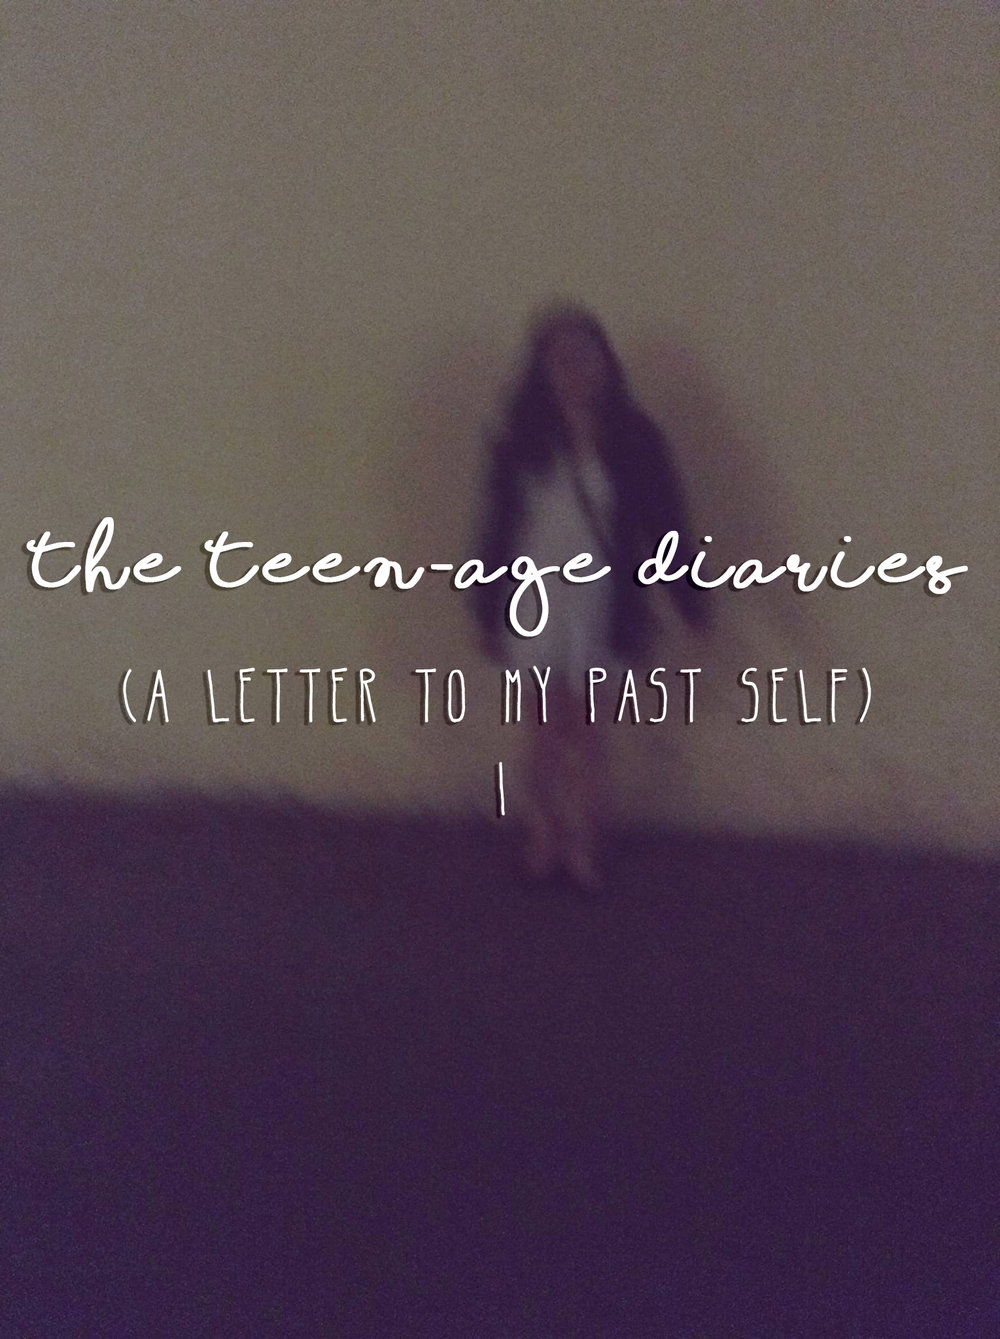 Teen-Age Diaries - Anonymous submission